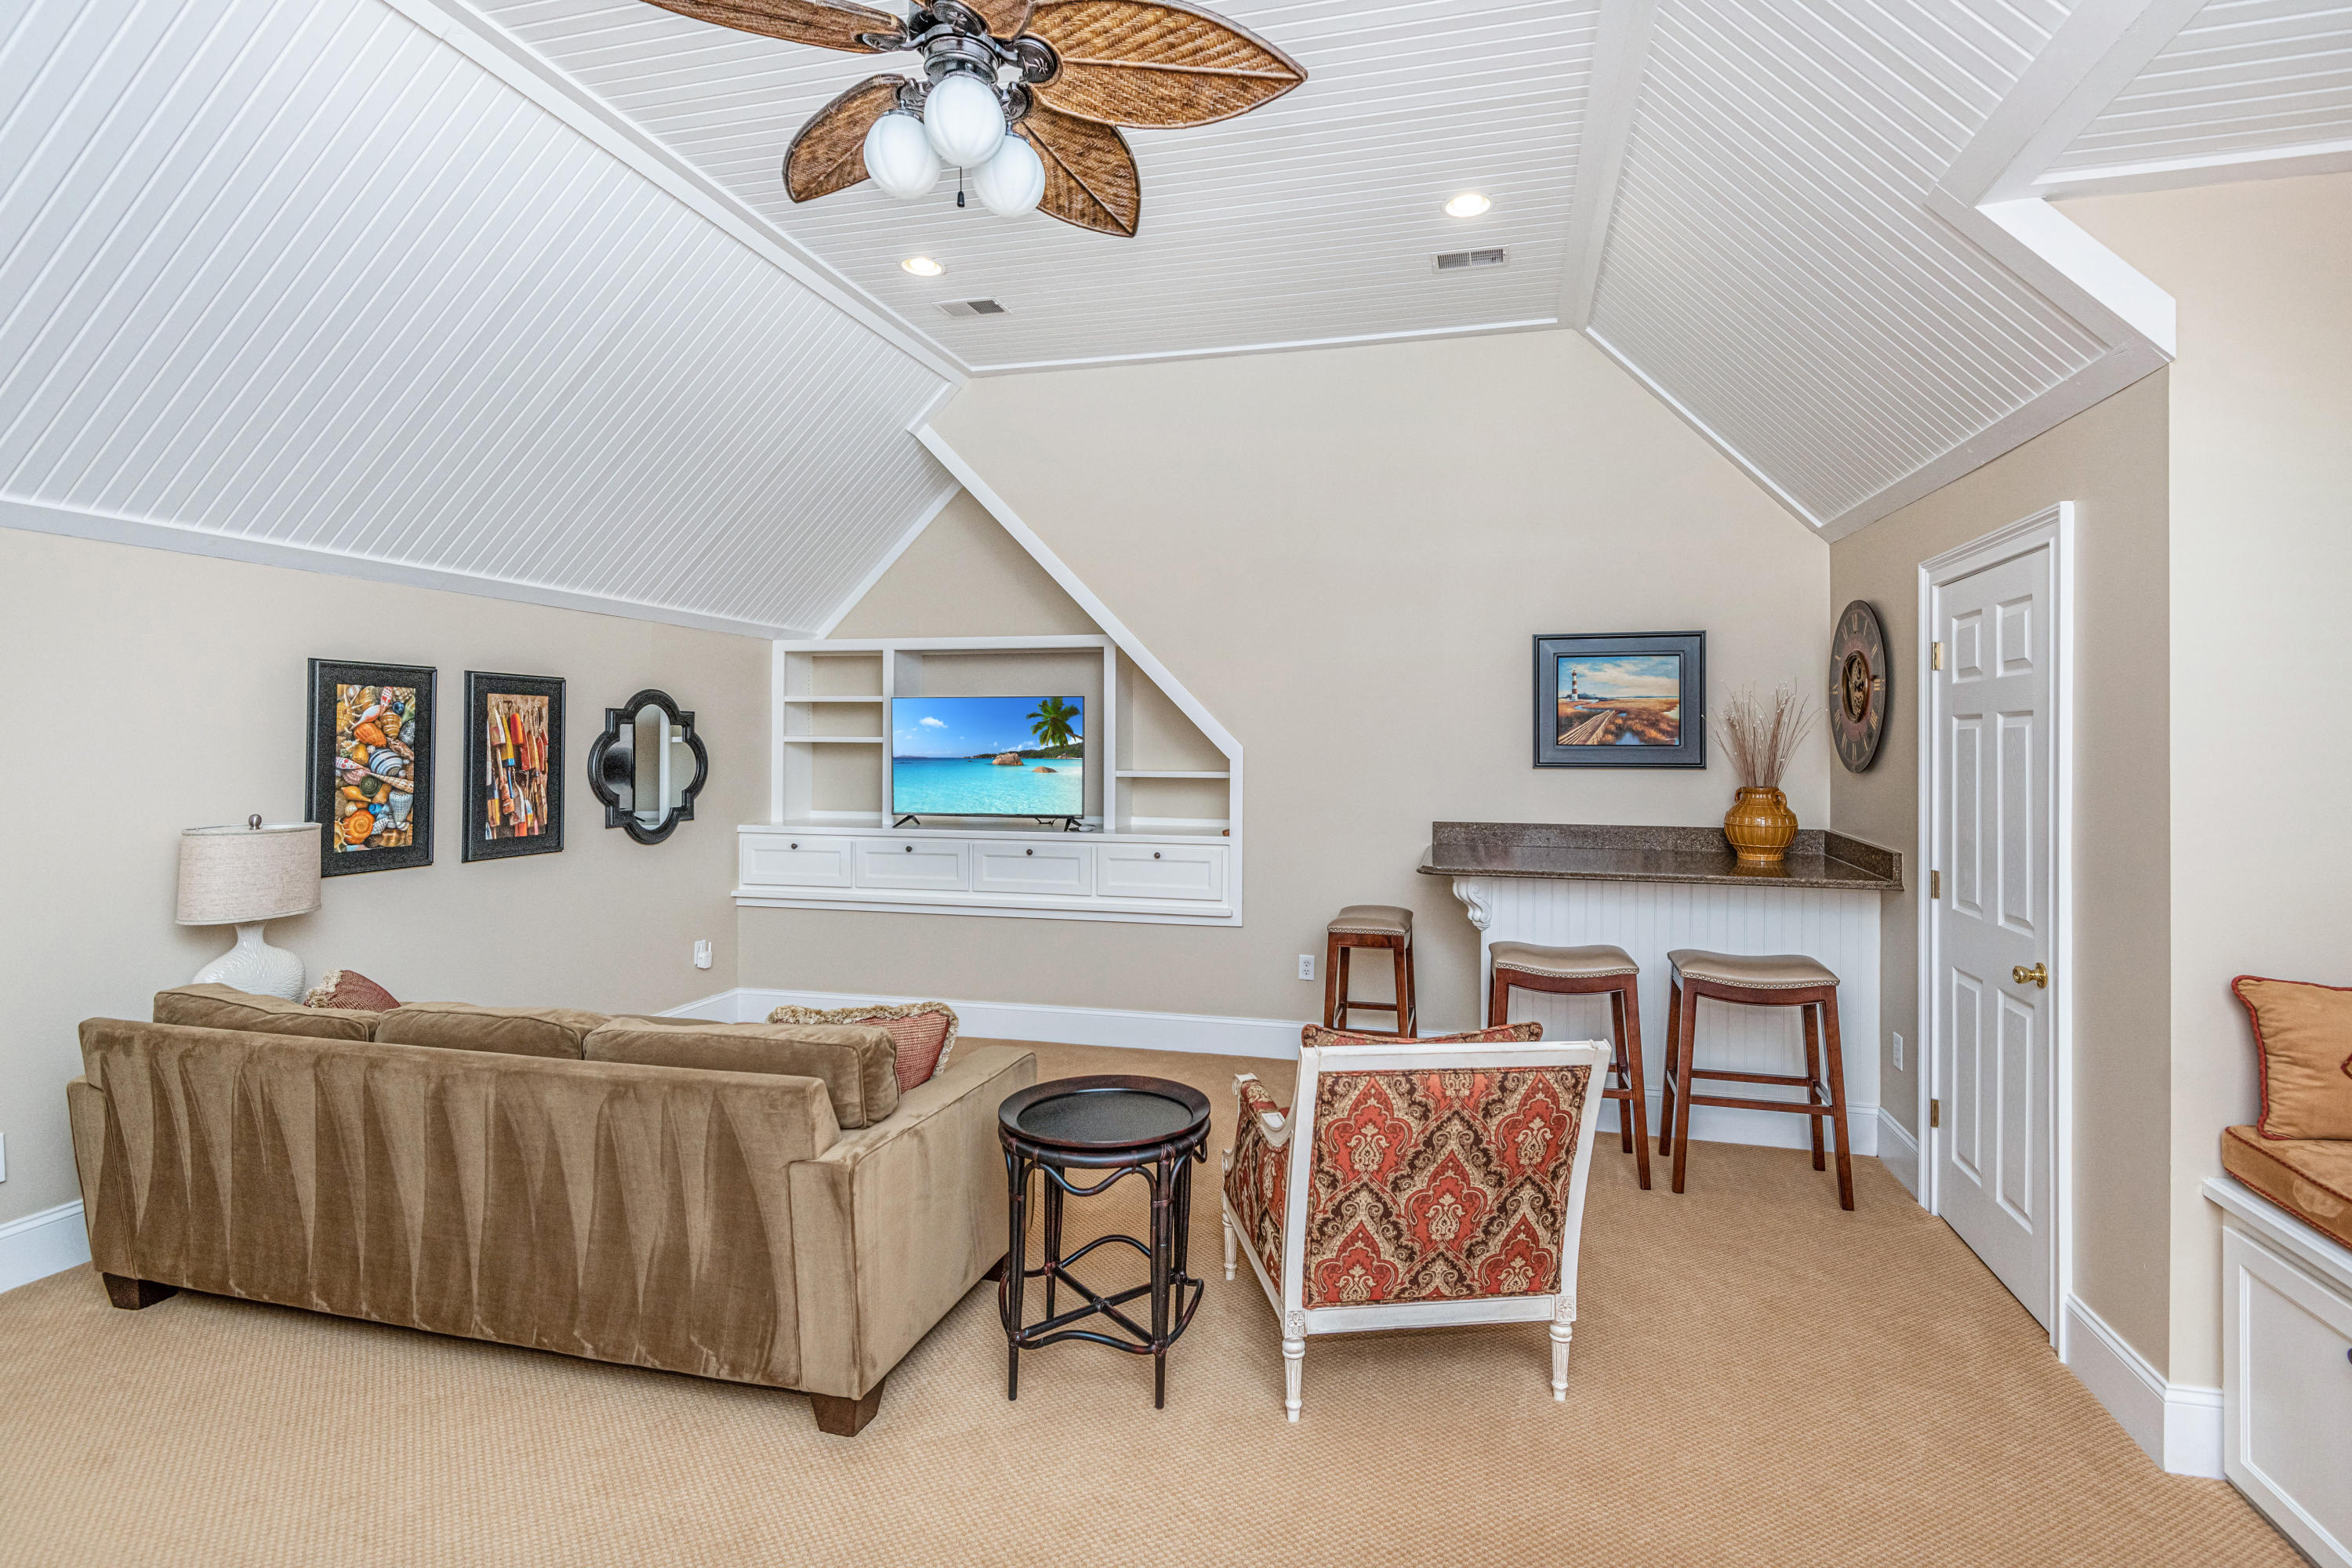 Dunes West Homes For Sale - 1837 Shell Ring, Mount Pleasant, SC - 4